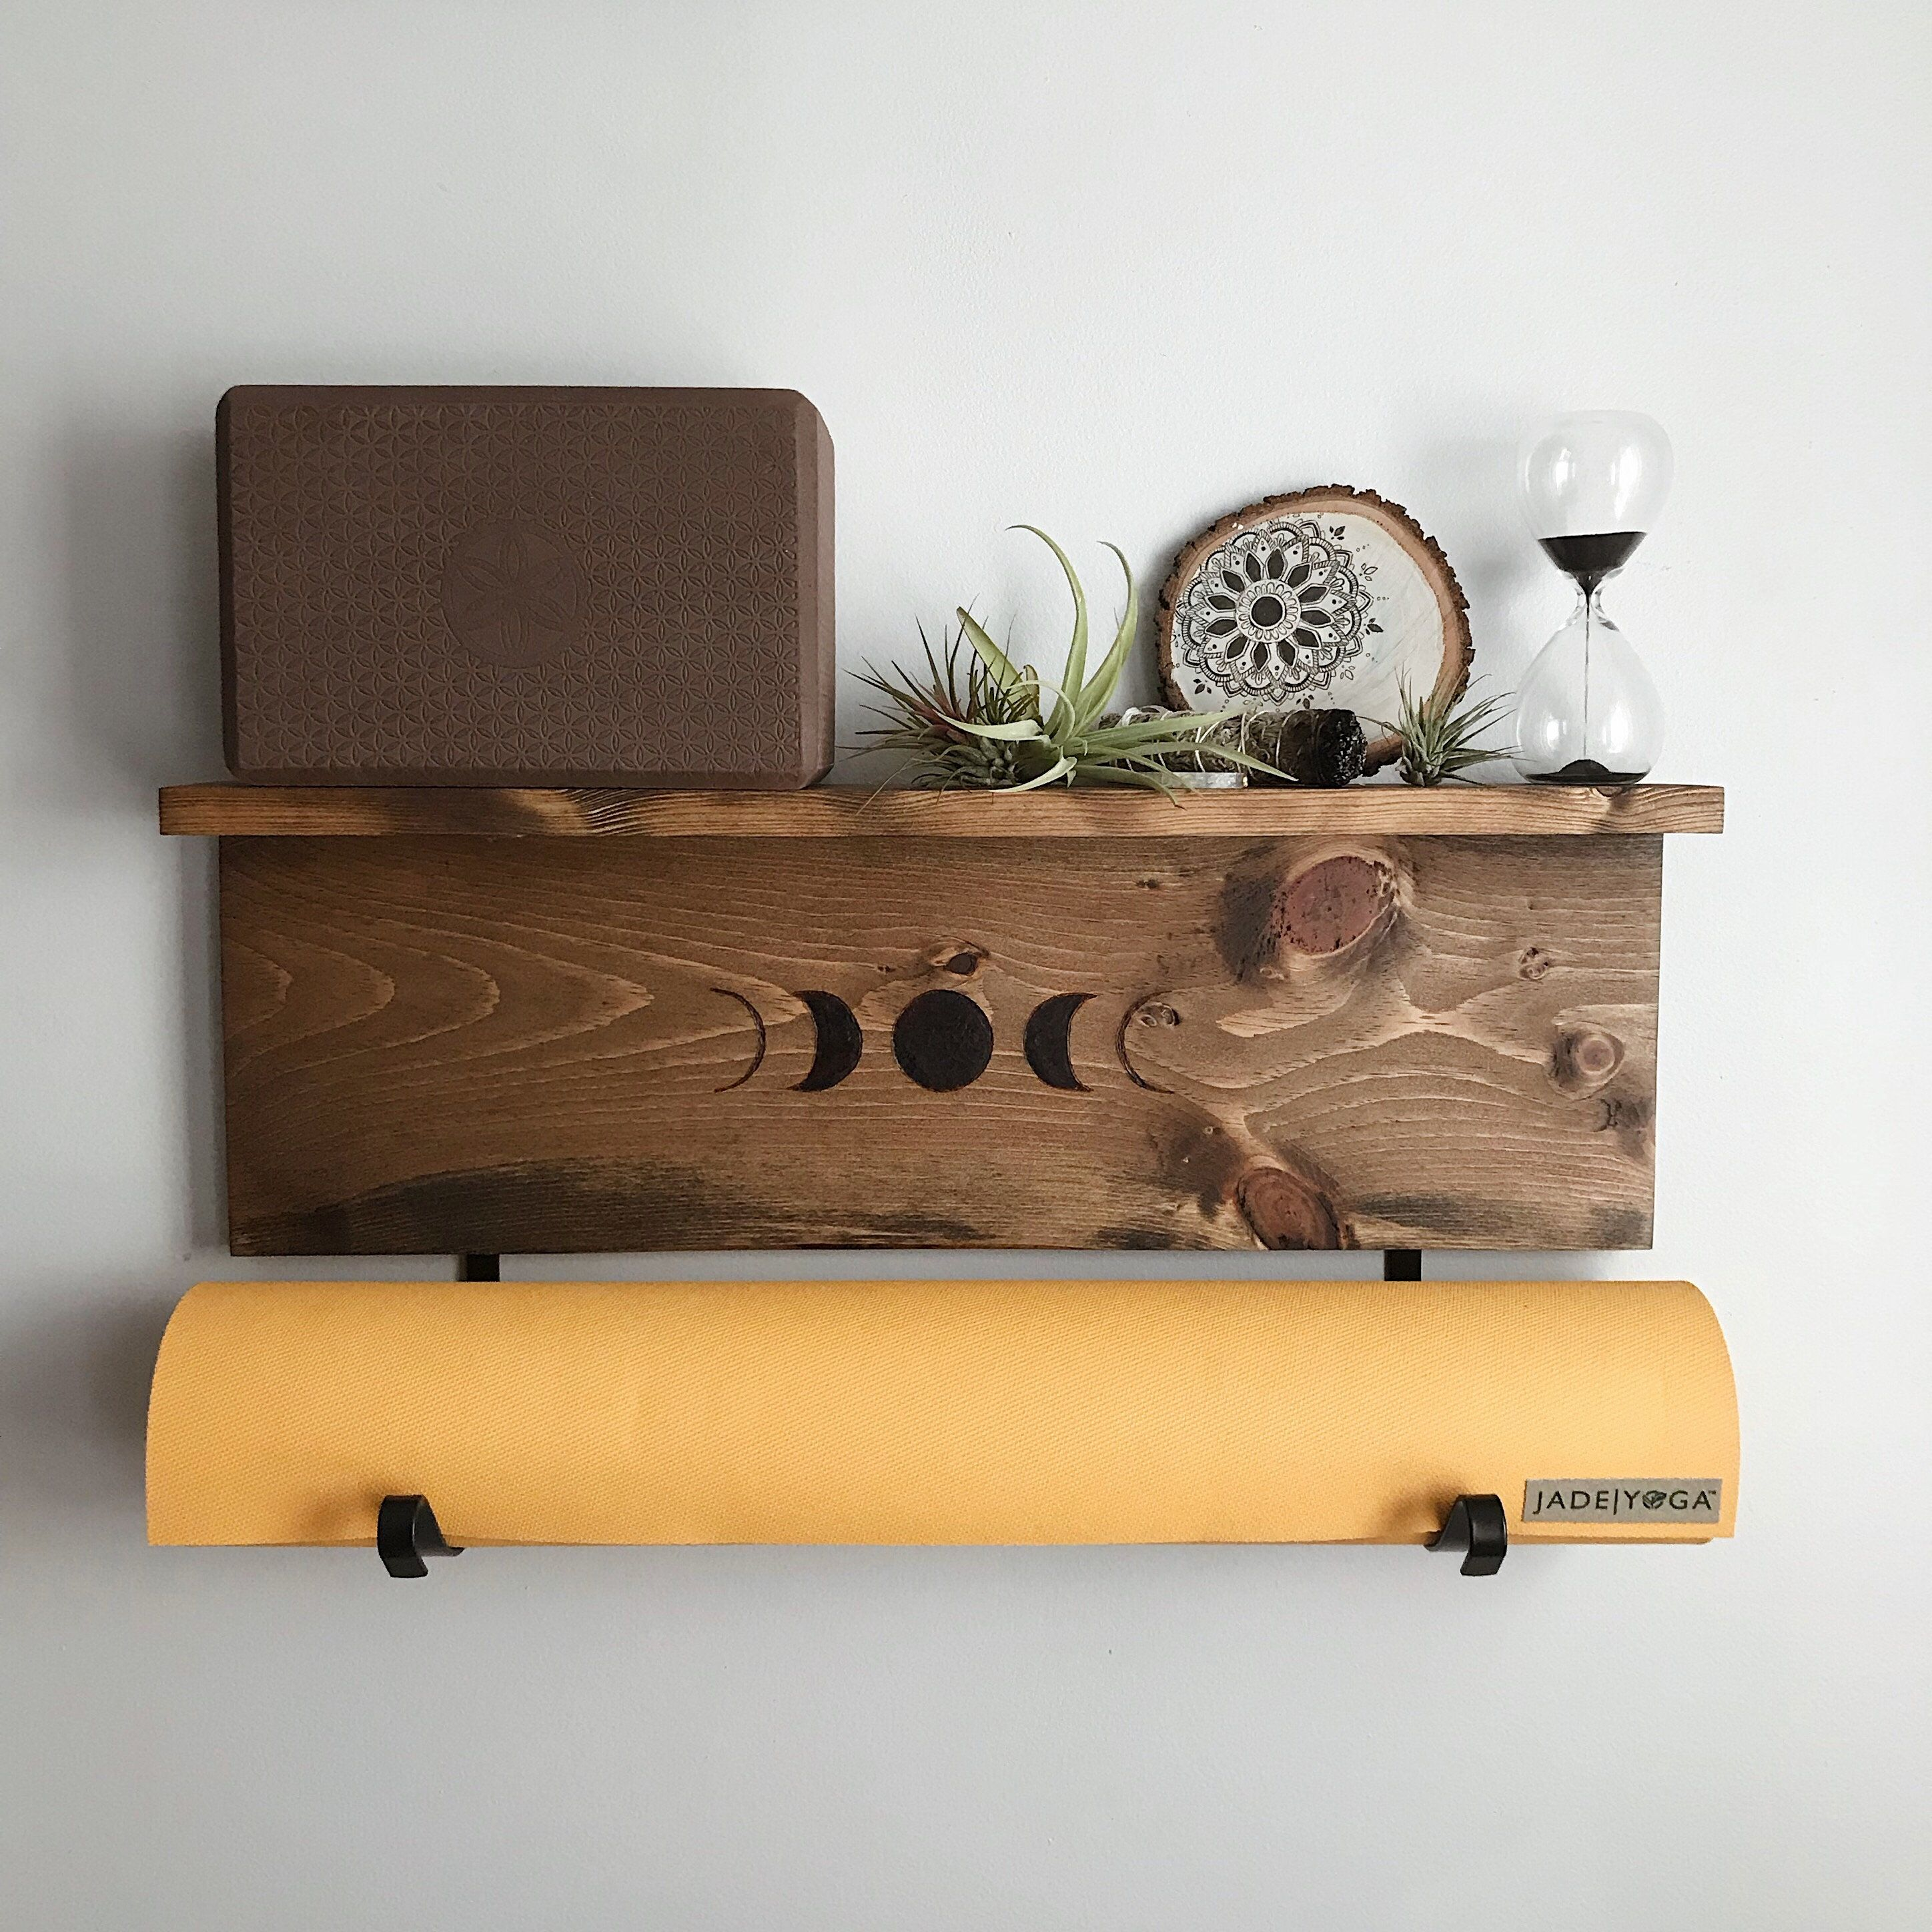 Excited To Share The Latest Addition To Our Etsy Shop Yoga Mat Rack And Shelf With Moon Phase Wood Burn Design One Wood Burn Designs Yoga Mat Holder Decor